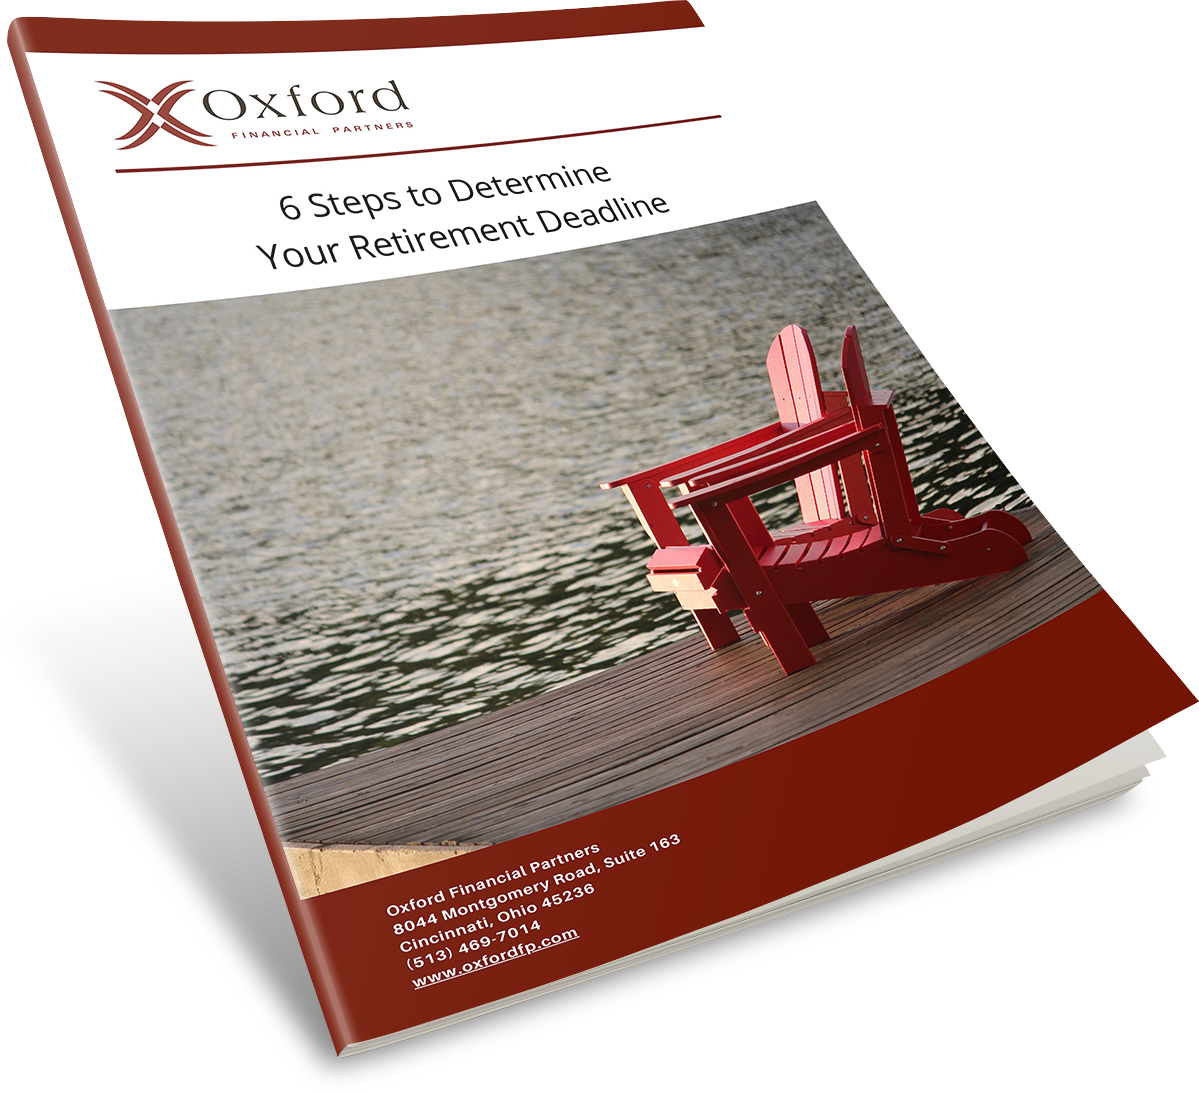 Download your Free Guide 6 Steps to Determine your Retirement Deadline Cincinnati, Ohio, Oxford Financial Partners